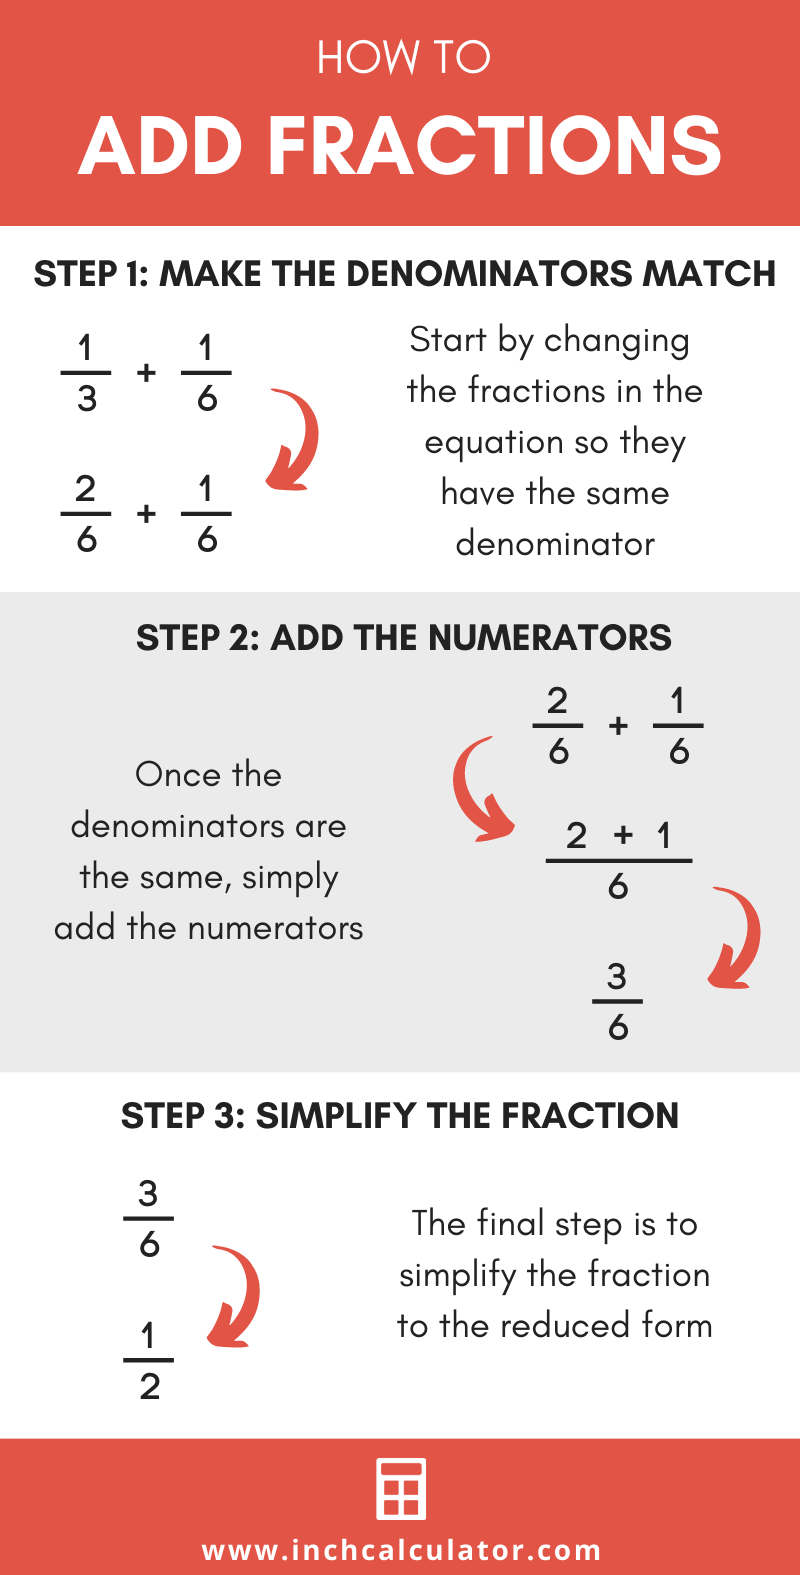 Illustration showing the three steps to add two fractions